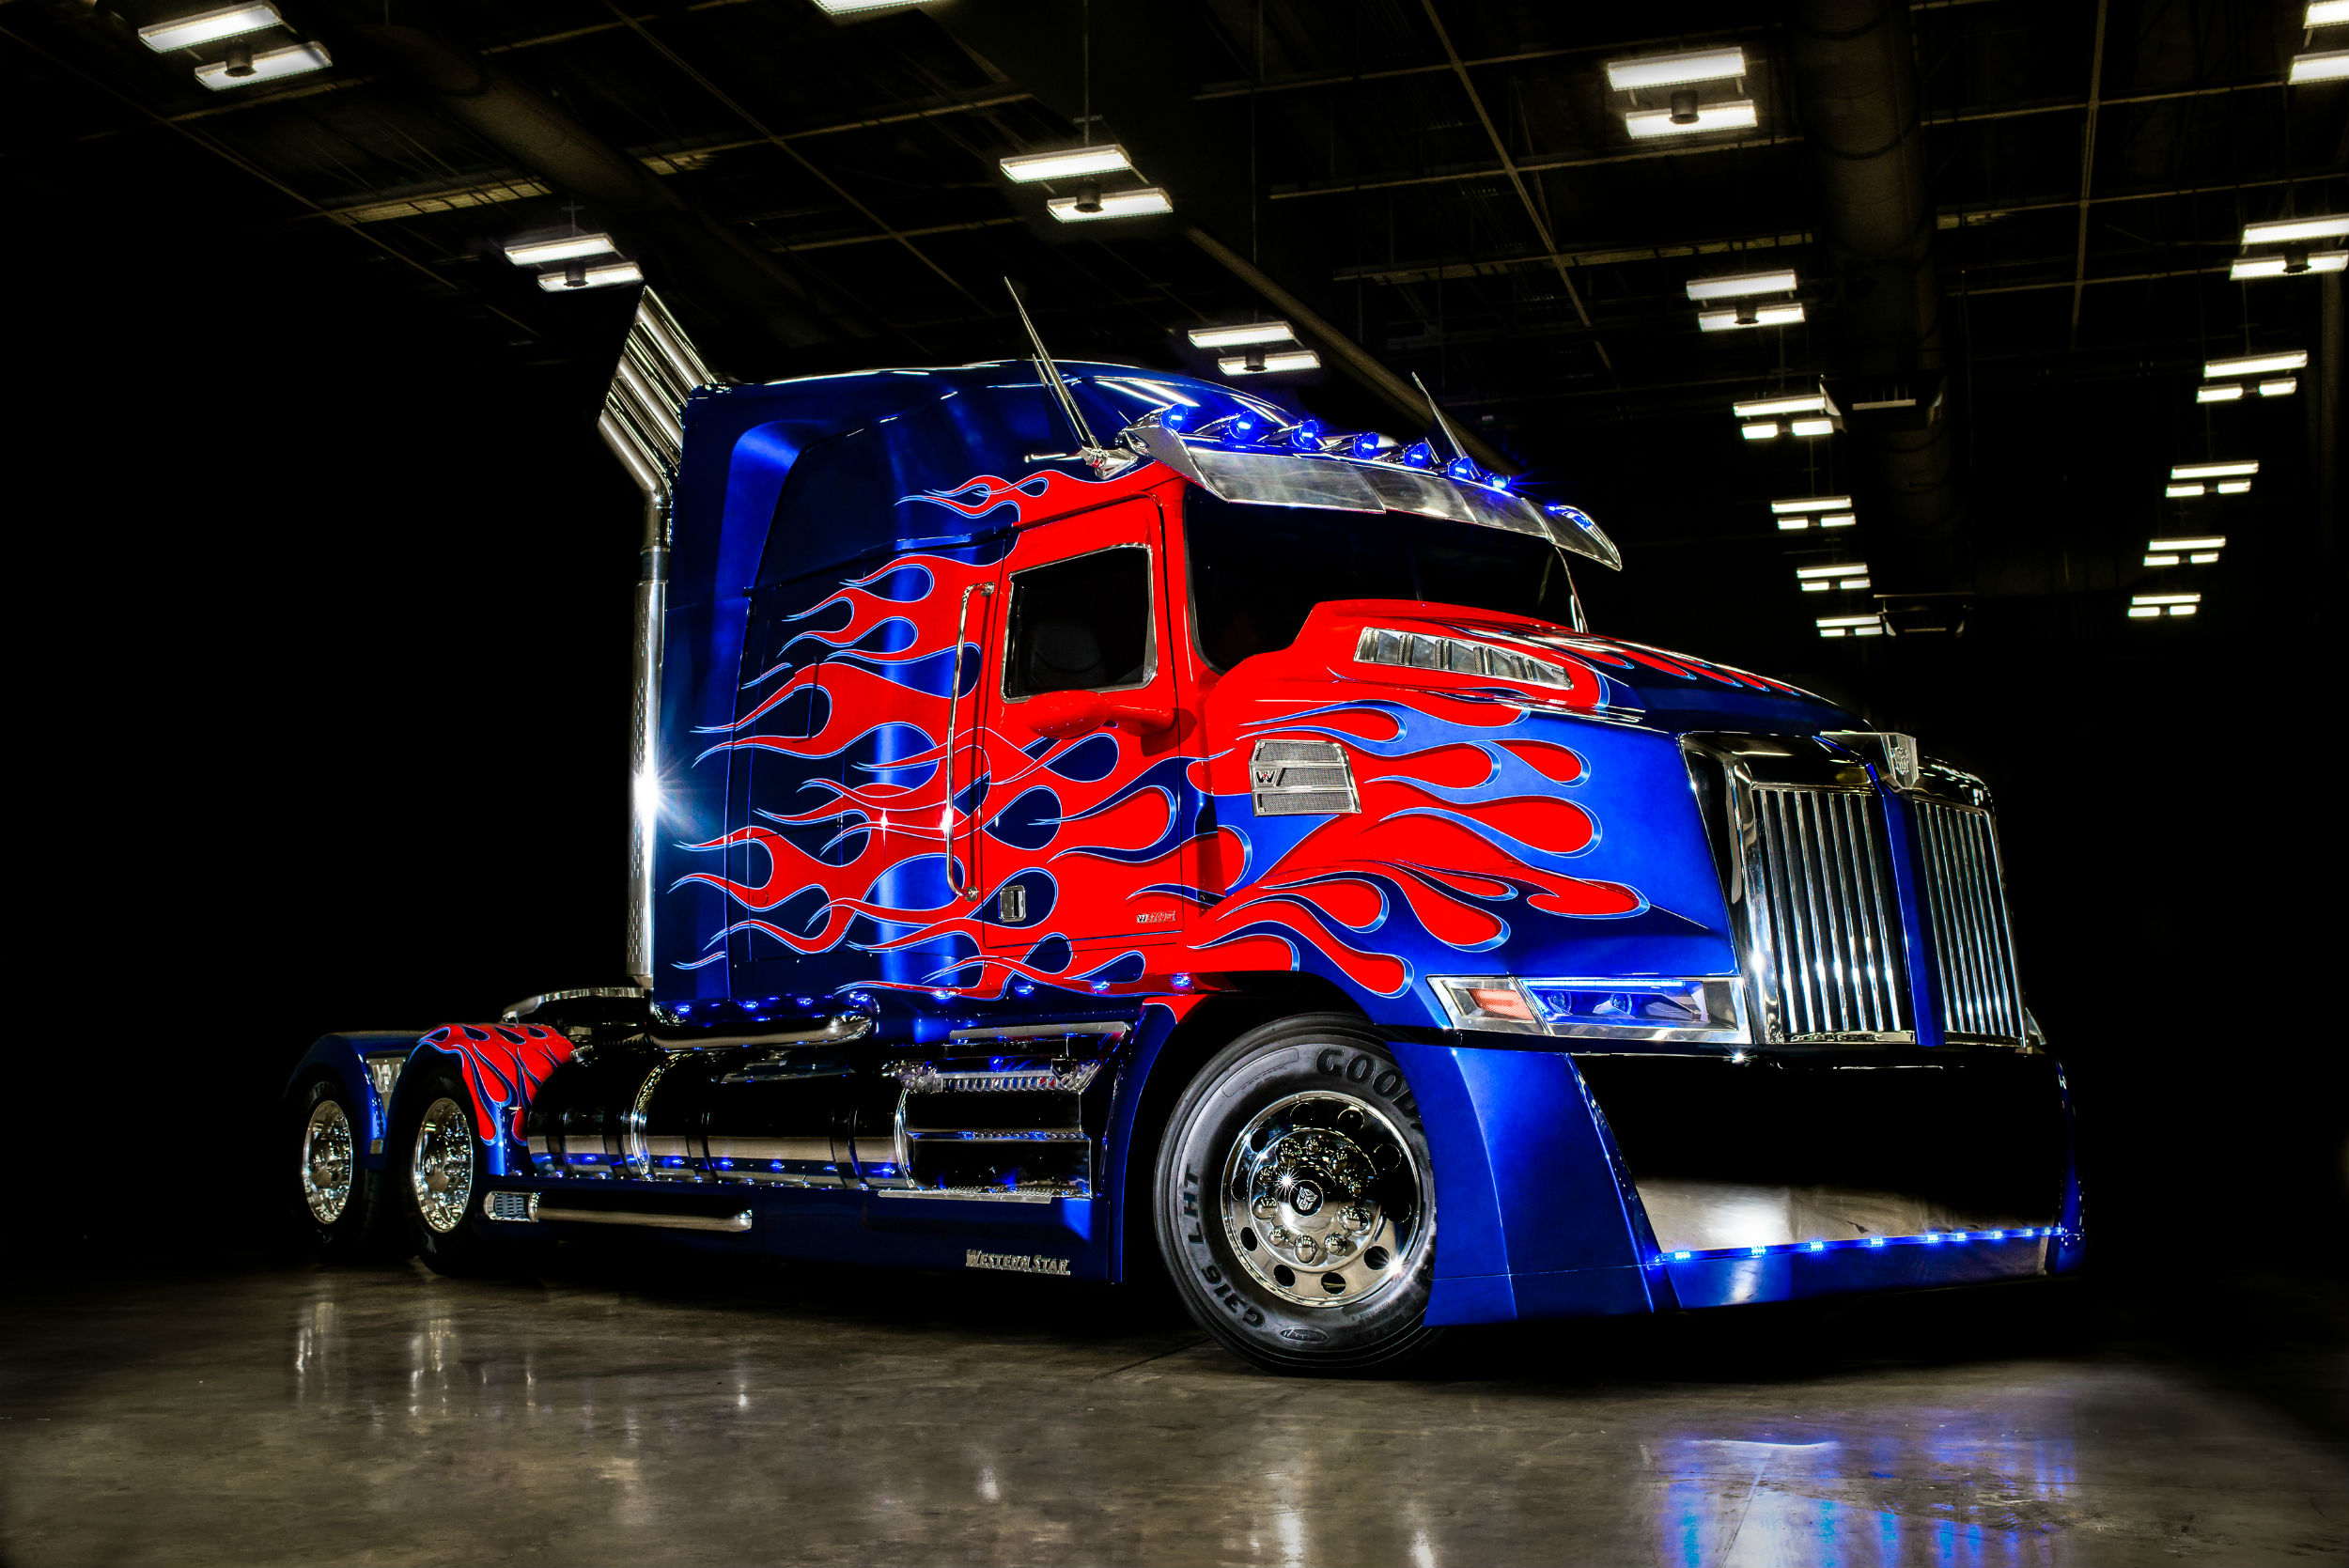 toy raptor truck with Optimus Prime Movie Replica To Attend Tfcon Charlotte 303191 on Ford Ka Monster Trucks Are Apparently A Thing as well Spotted Four Door 2017 Ford F 150 Raptor moreover 163 1304 2012 Sema Top 25 Vehicles likewise Watch likewise 262216491767.